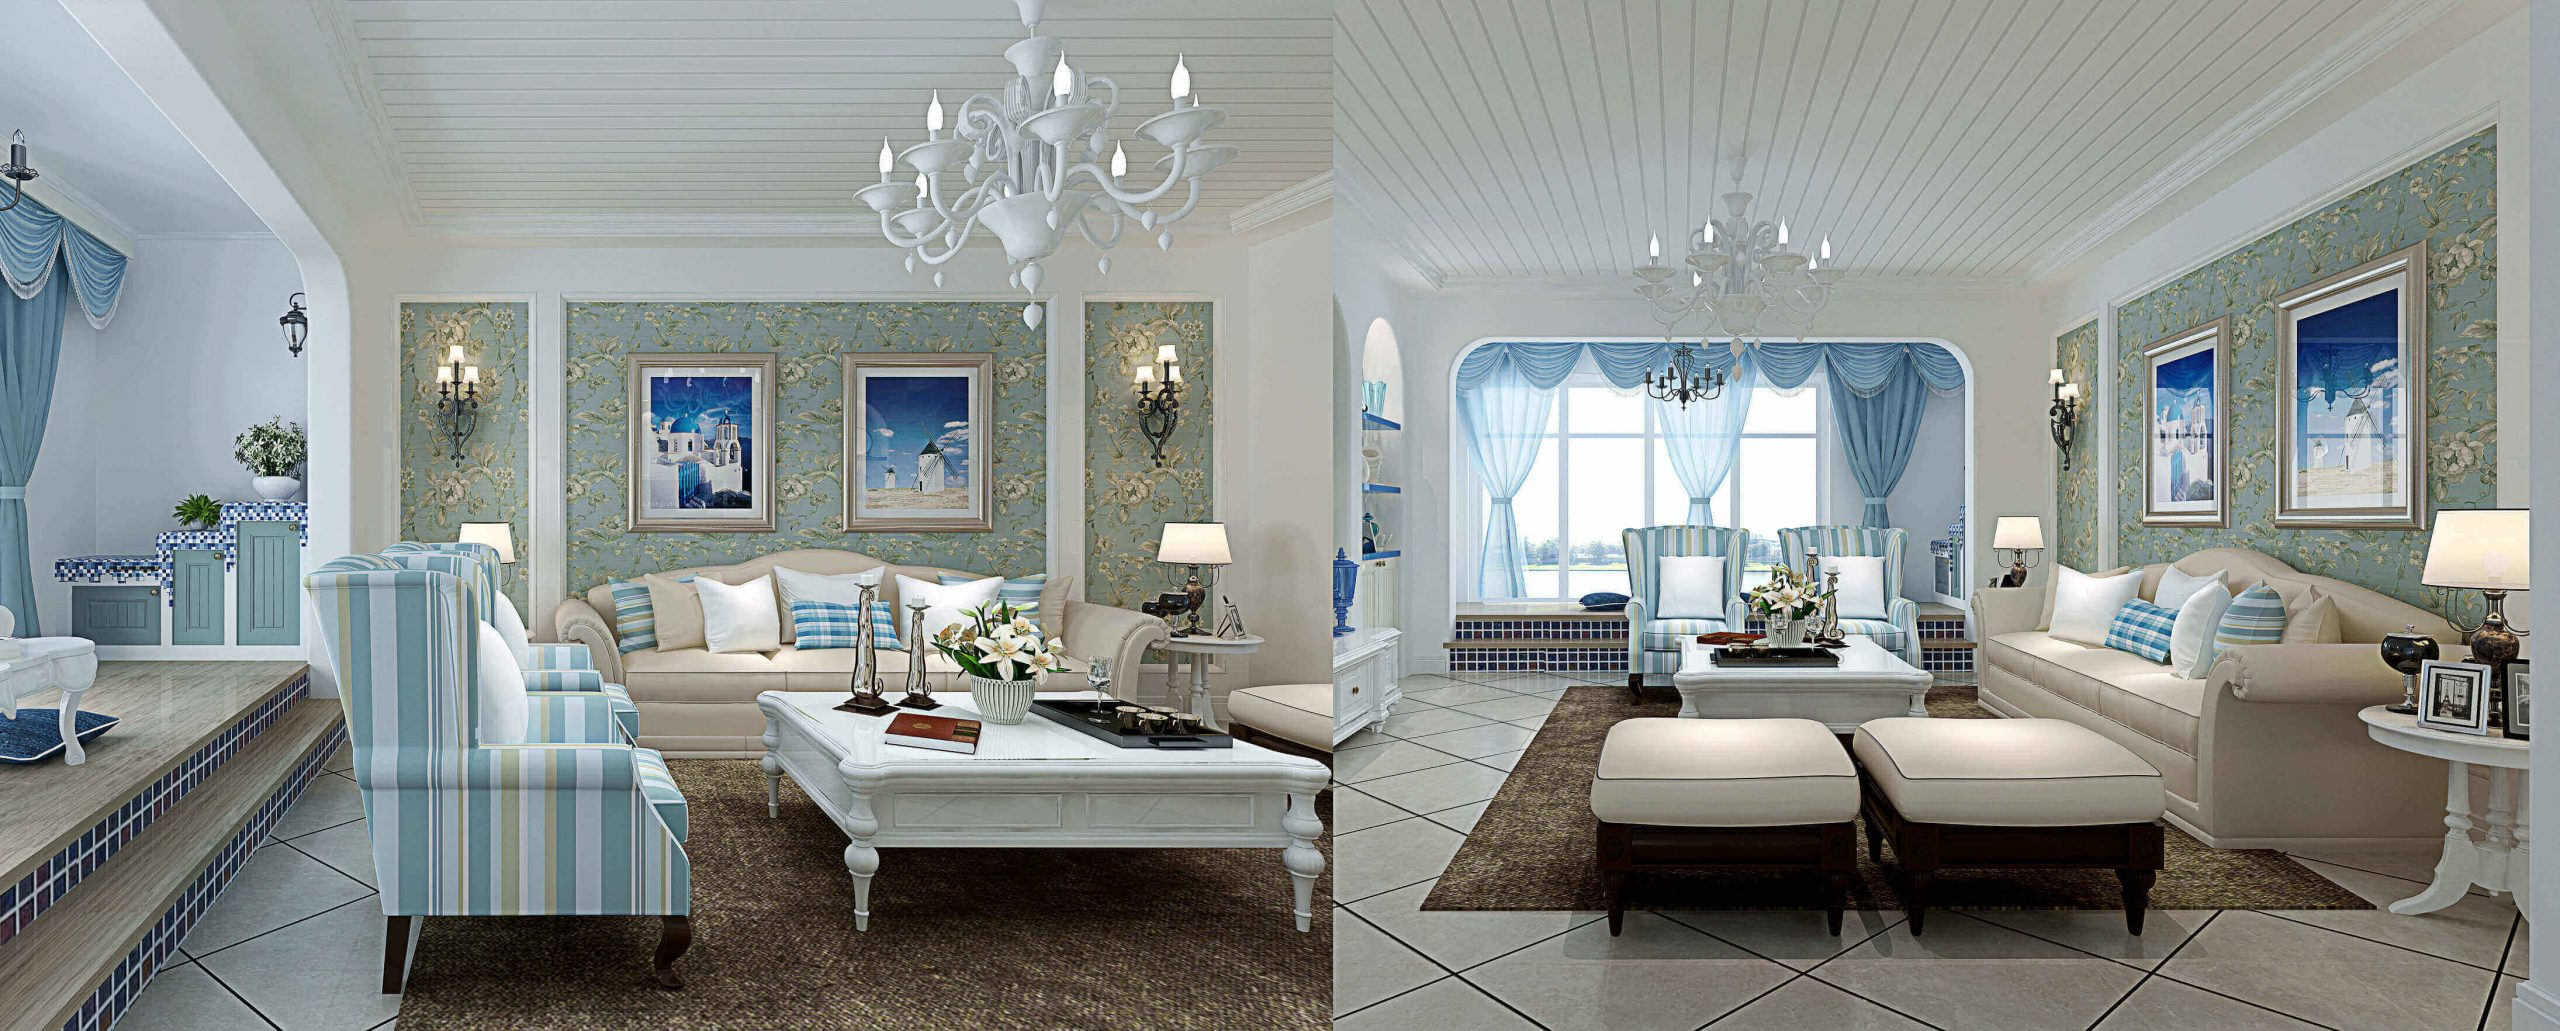 Classic Blue: Beginning of Bedroom Design in 2020 Colors of Choice